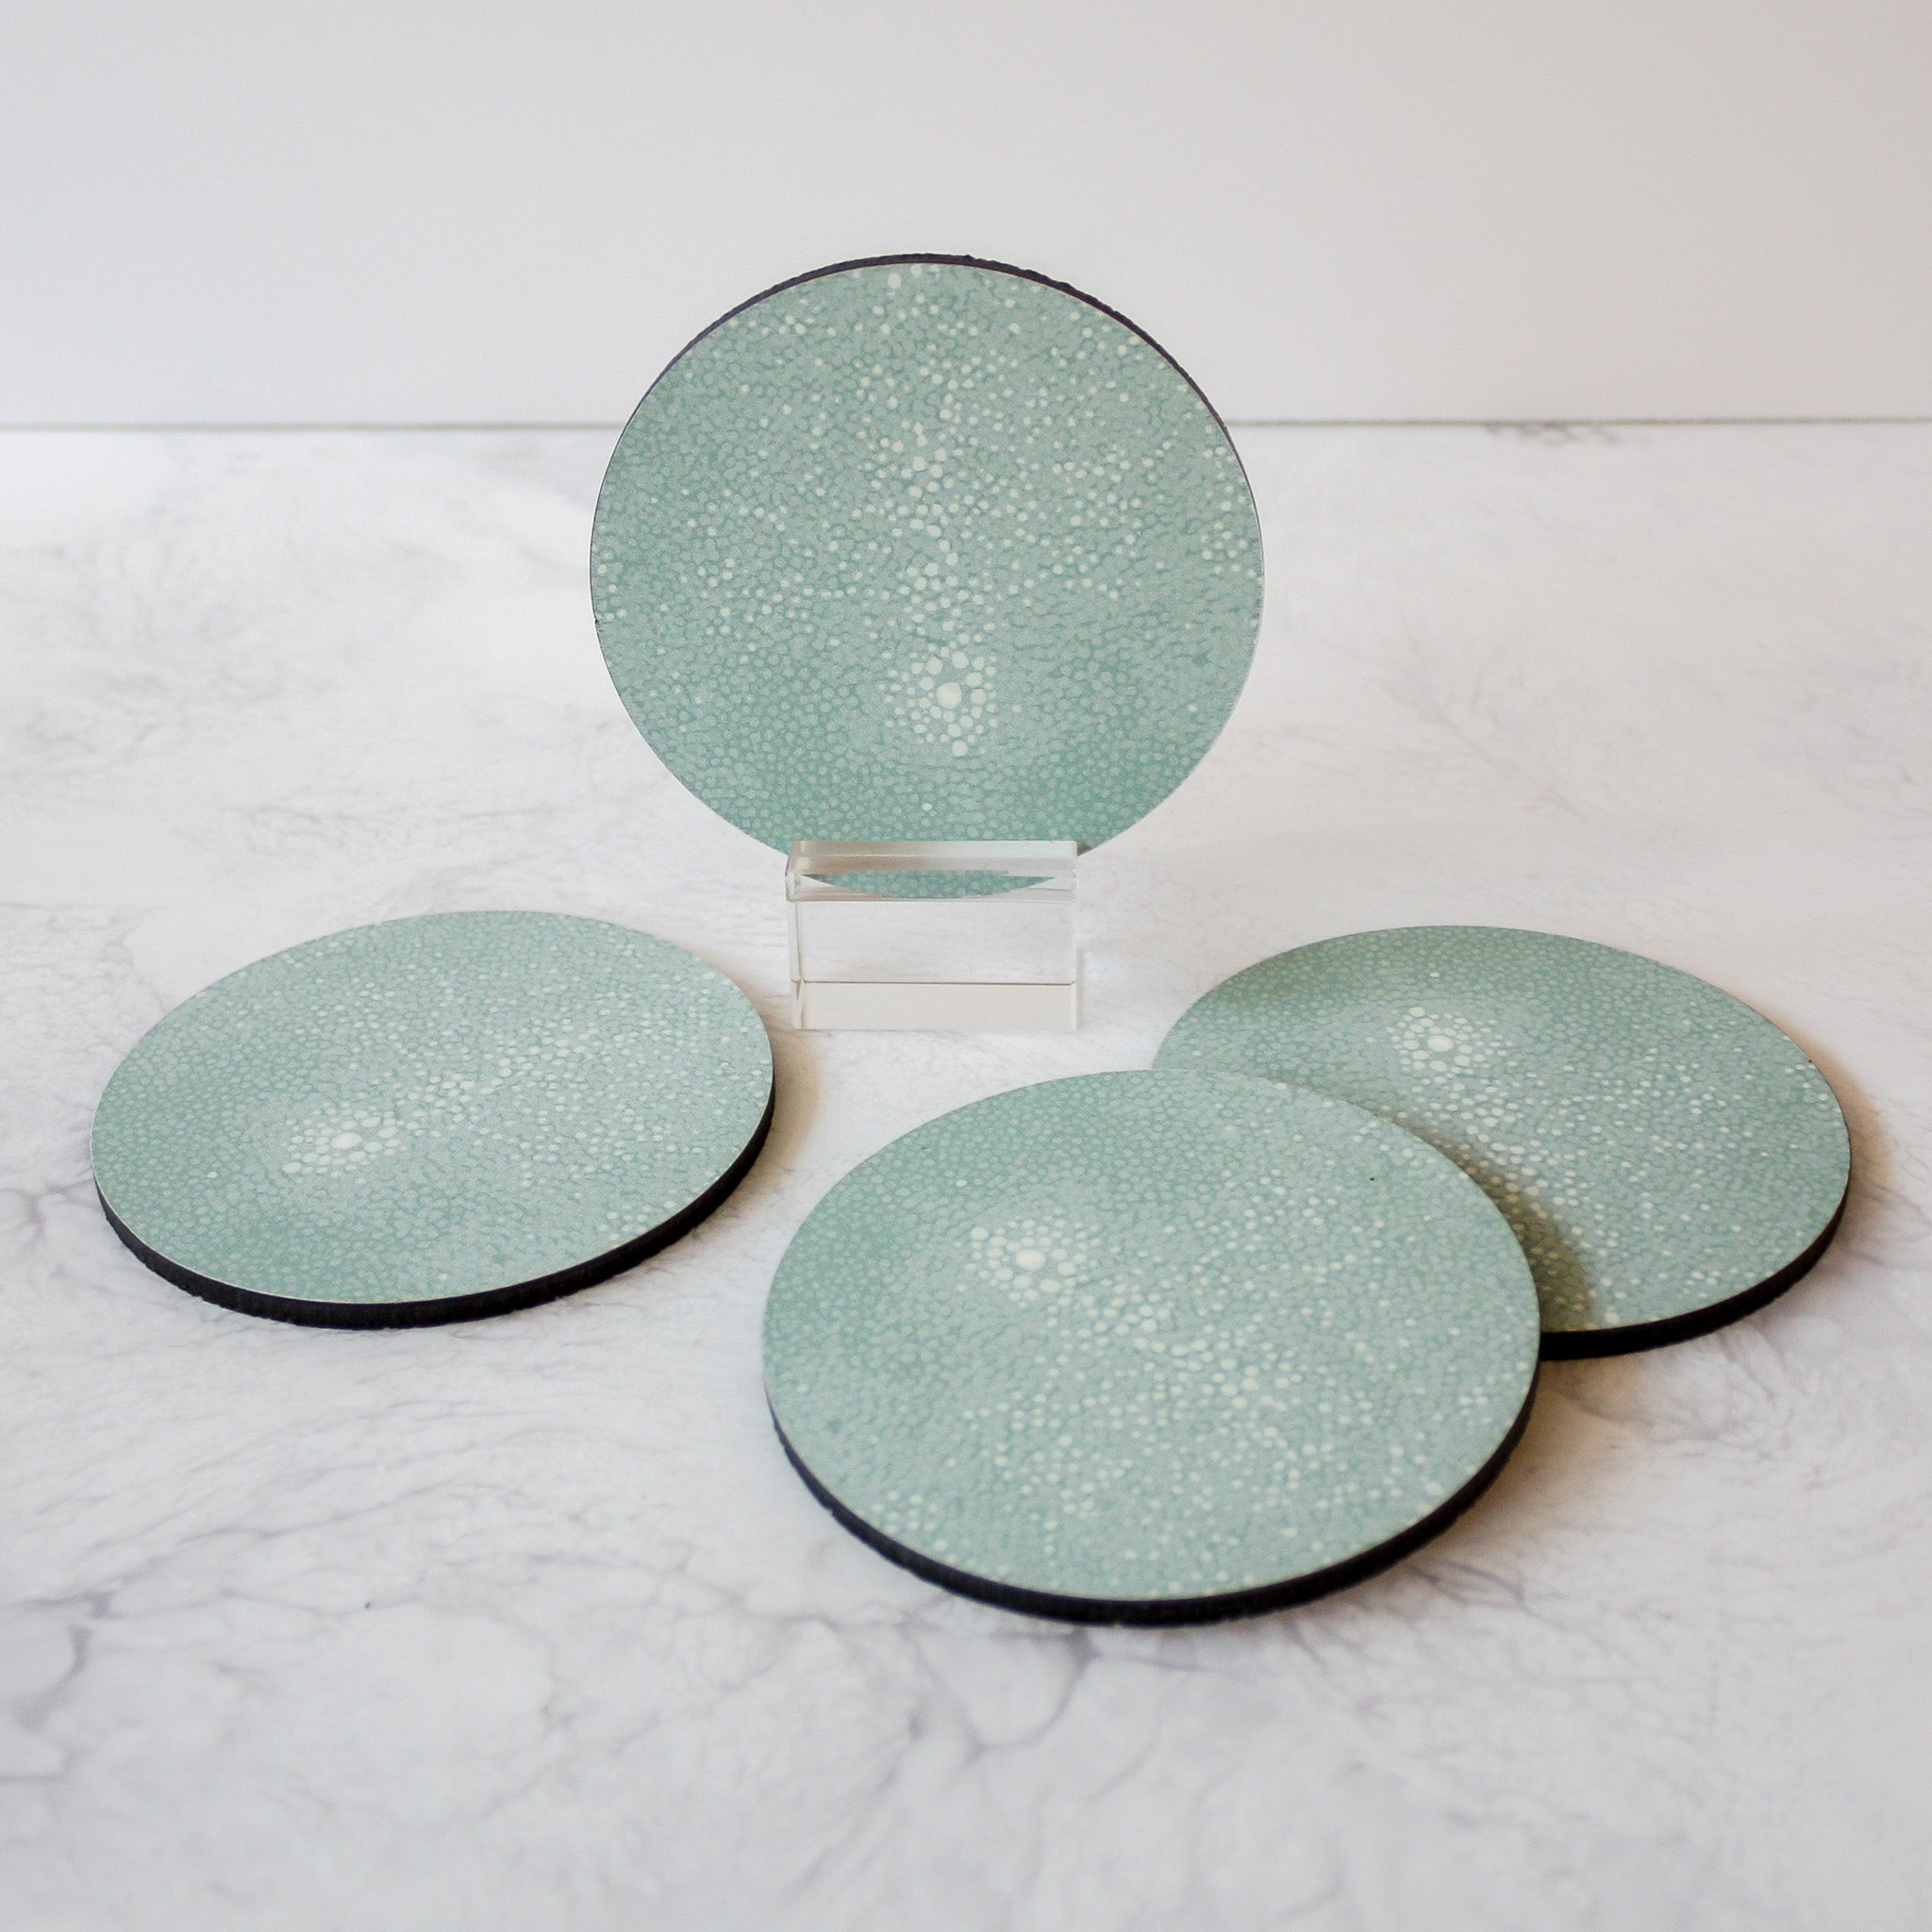 Printed Coasters - Shagreen in light green